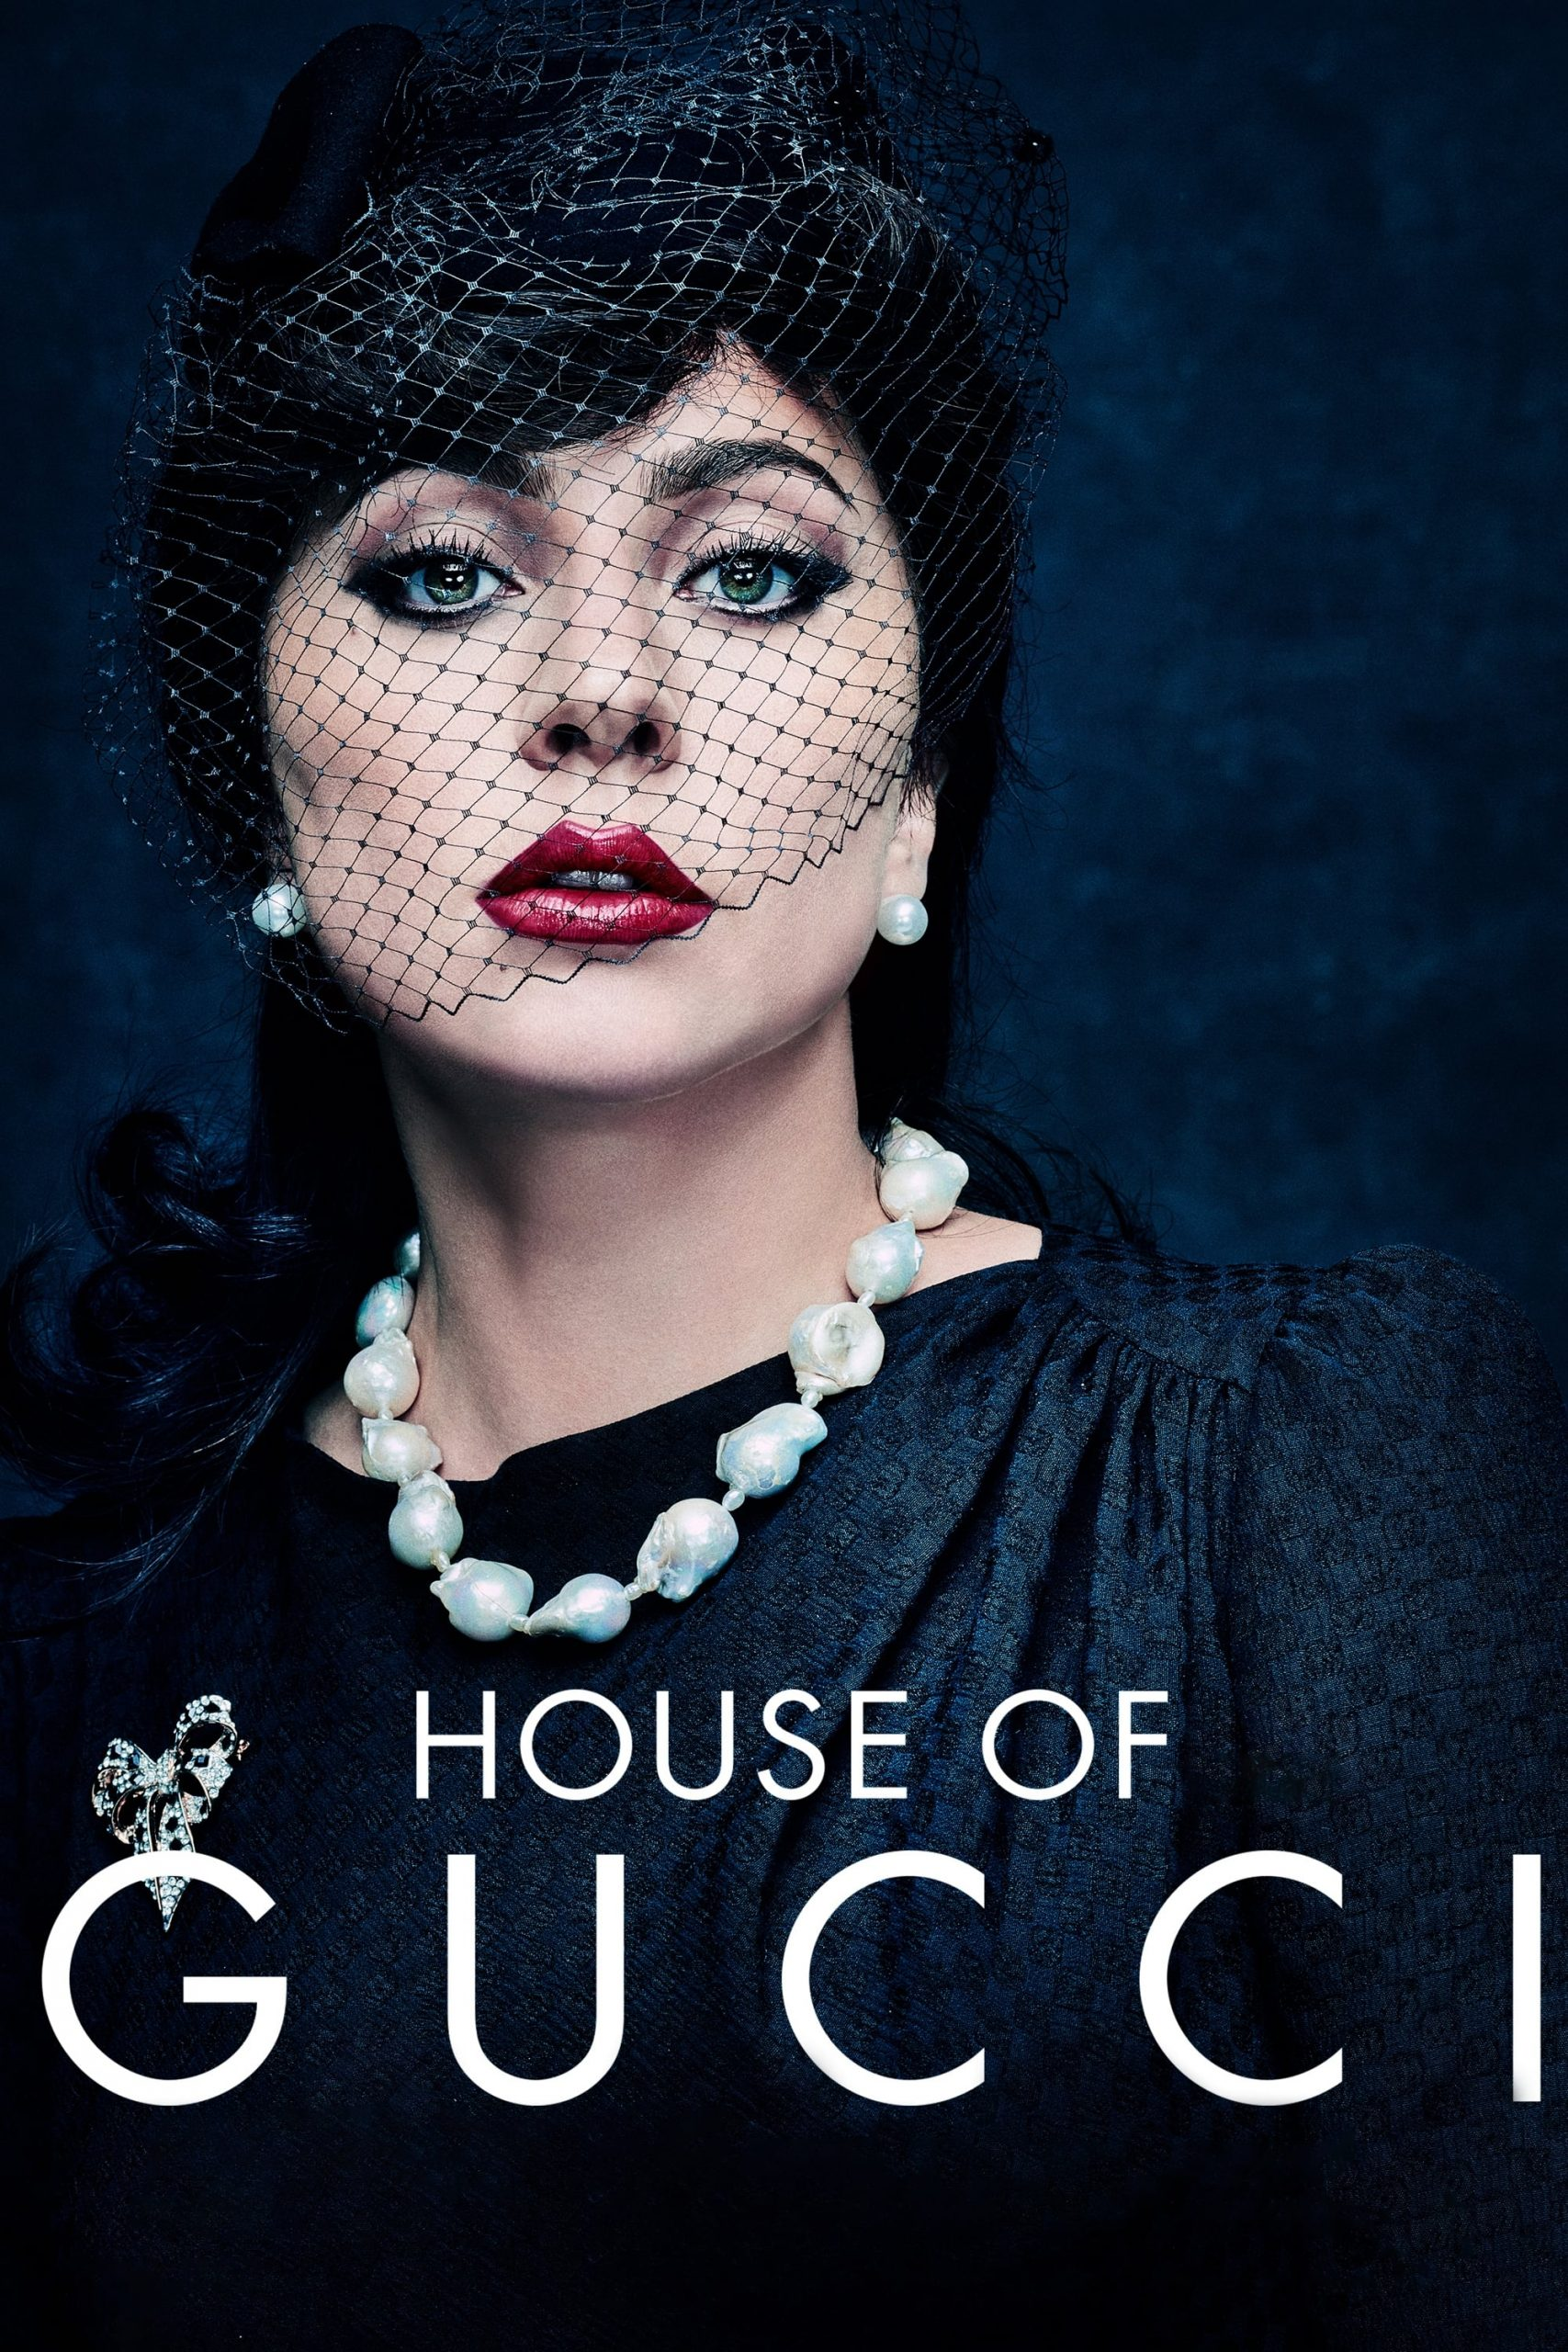 Poster for House of Gucci (2021)